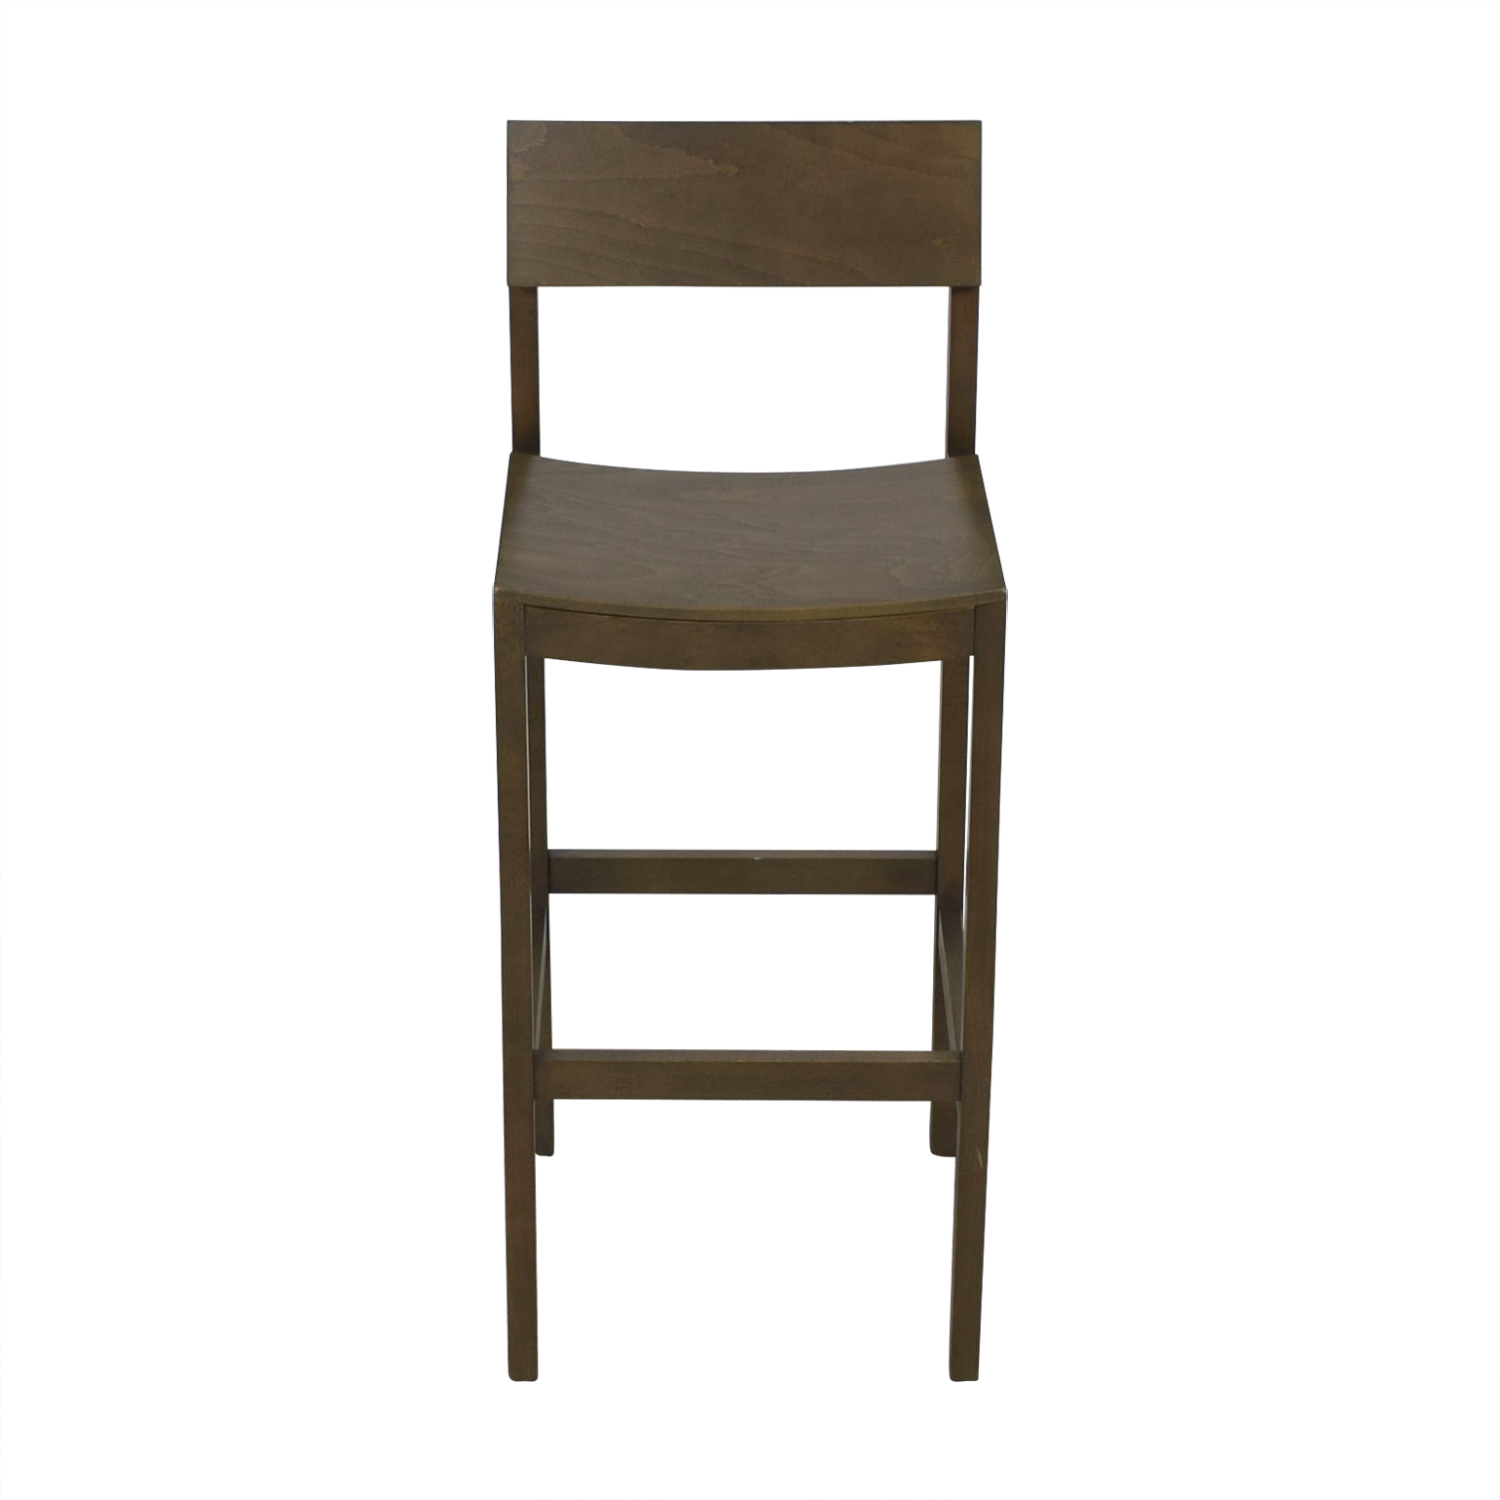 Excellent 66 Off Cb2 Cb2 Counter Stool Chairs Pabps2019 Chair Design Images Pabps2019Com